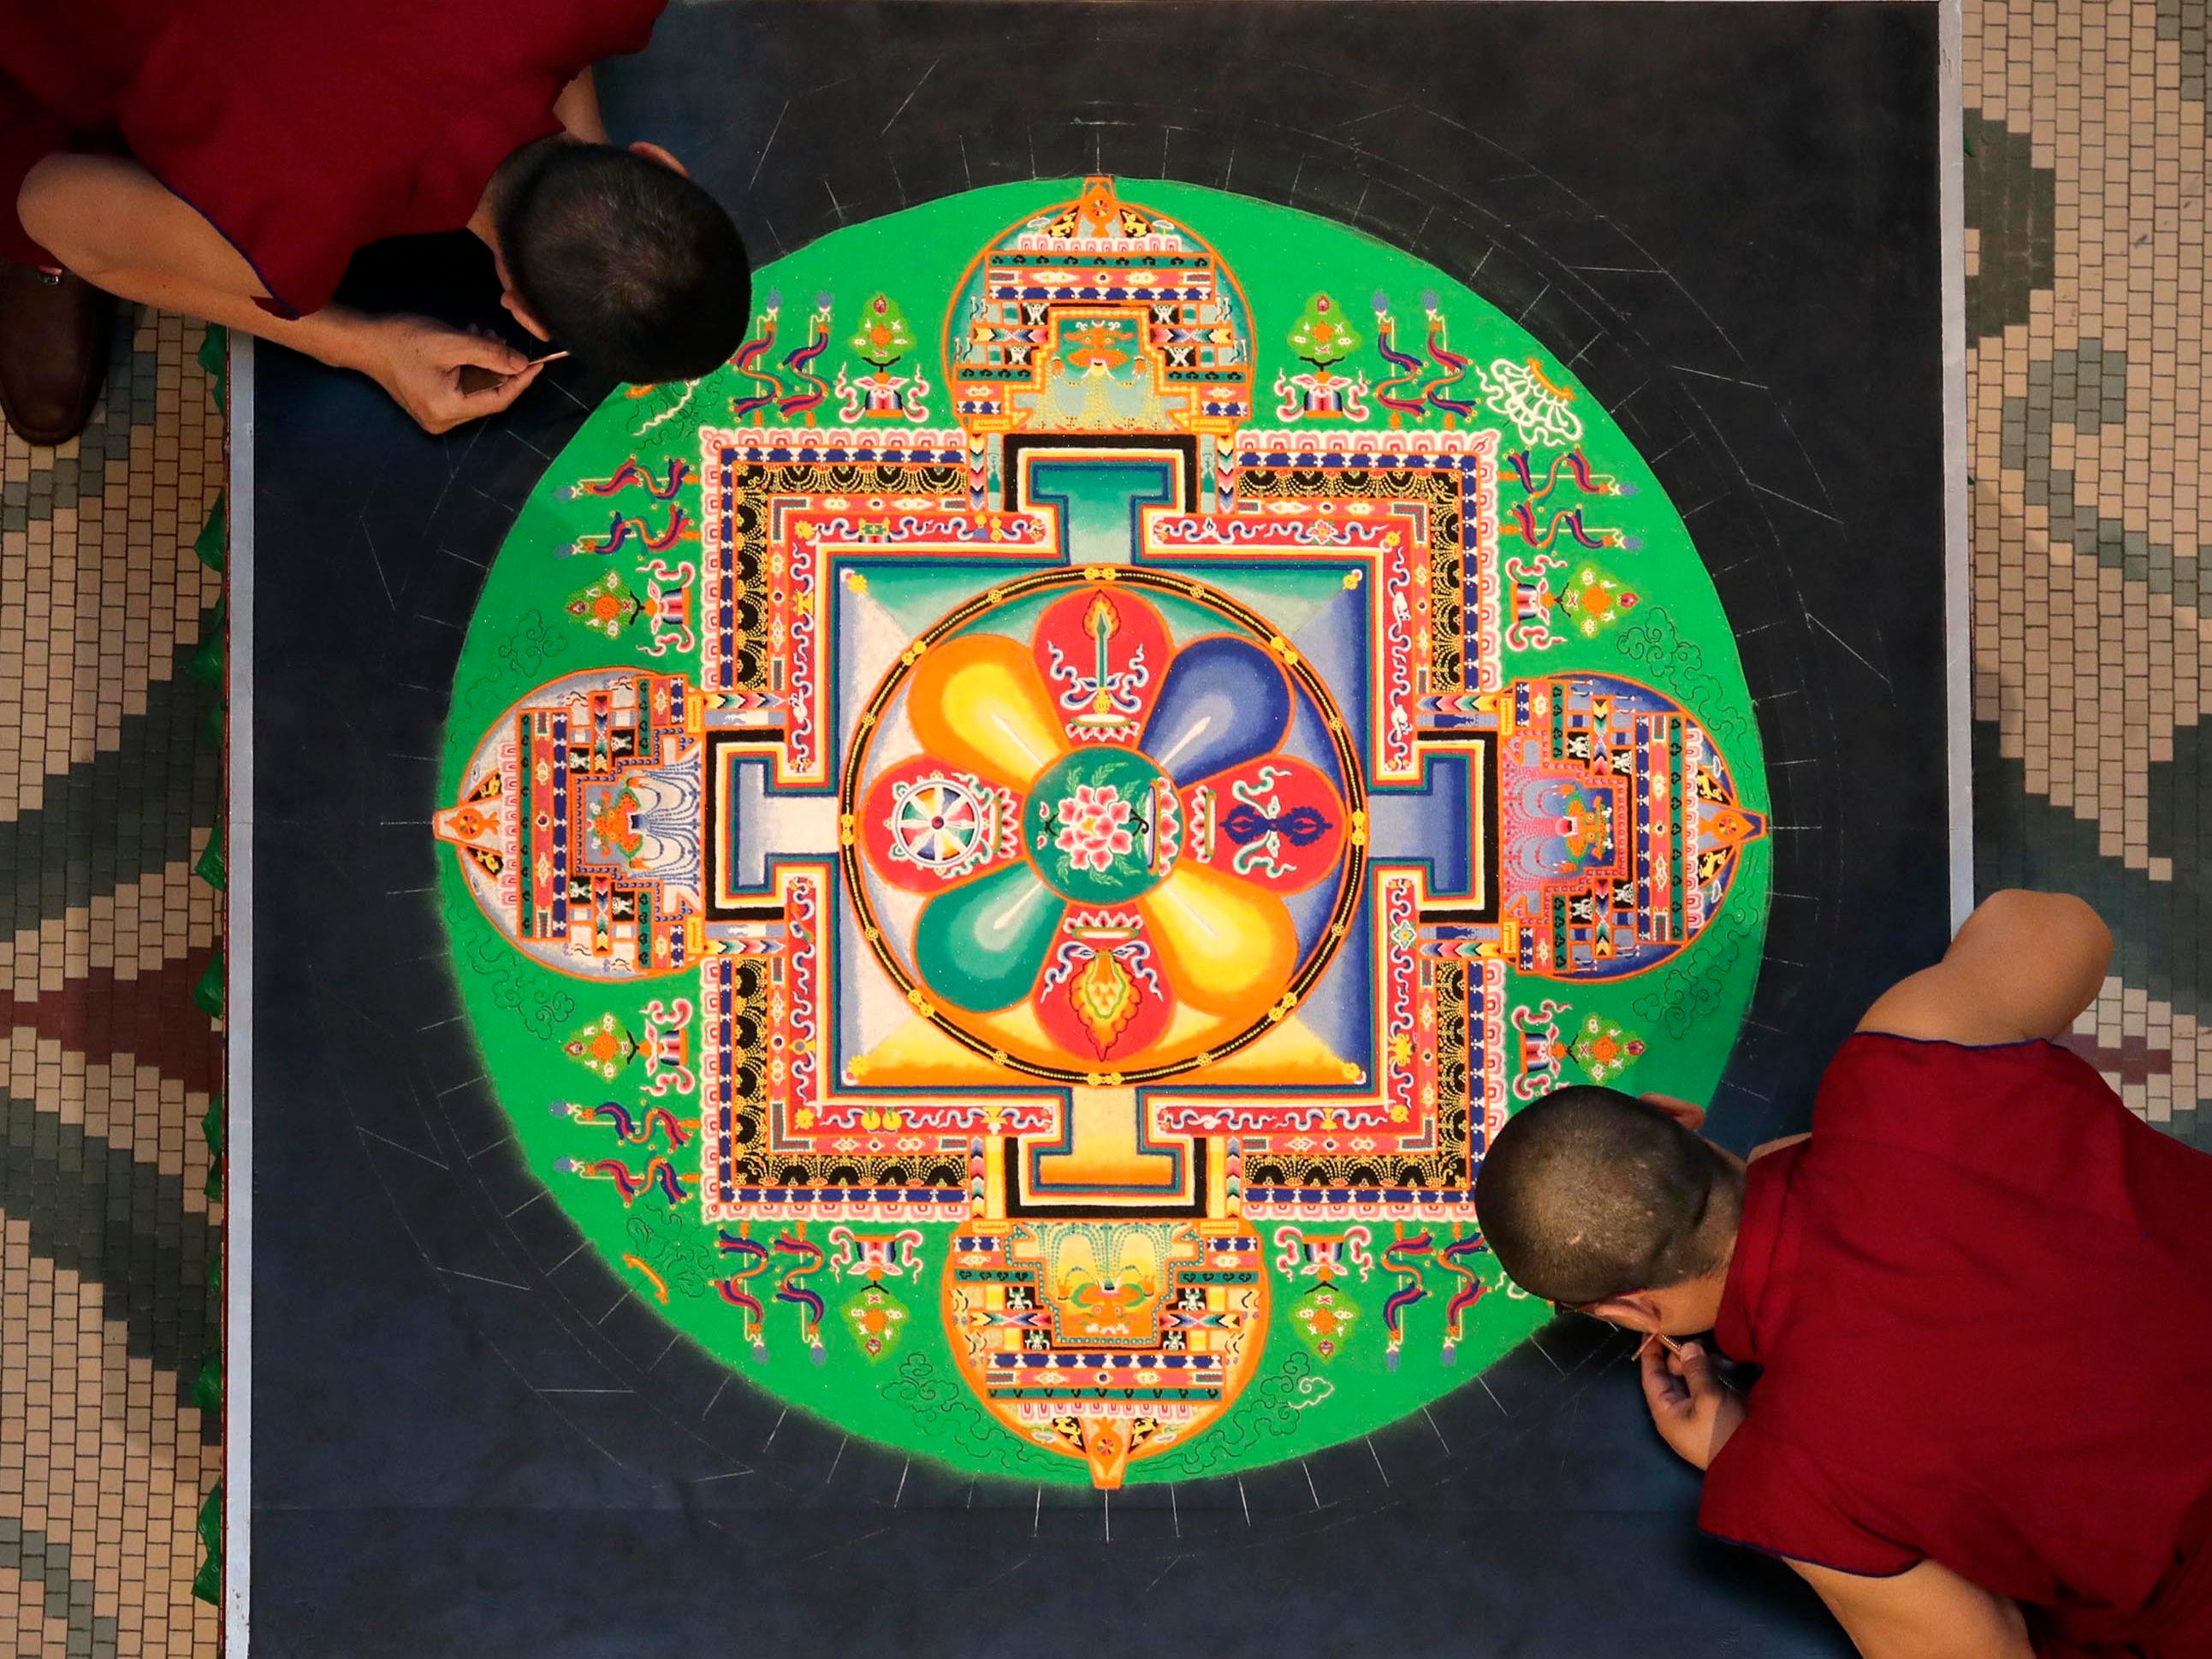 Buddhist monks from the Drepung Loseling Monastery, mix bowls of colorful sand and use funnels to apply the sand and create a  sand mandala in the center of Milwaukee's City Hall, Thursday, April 11, 2019.